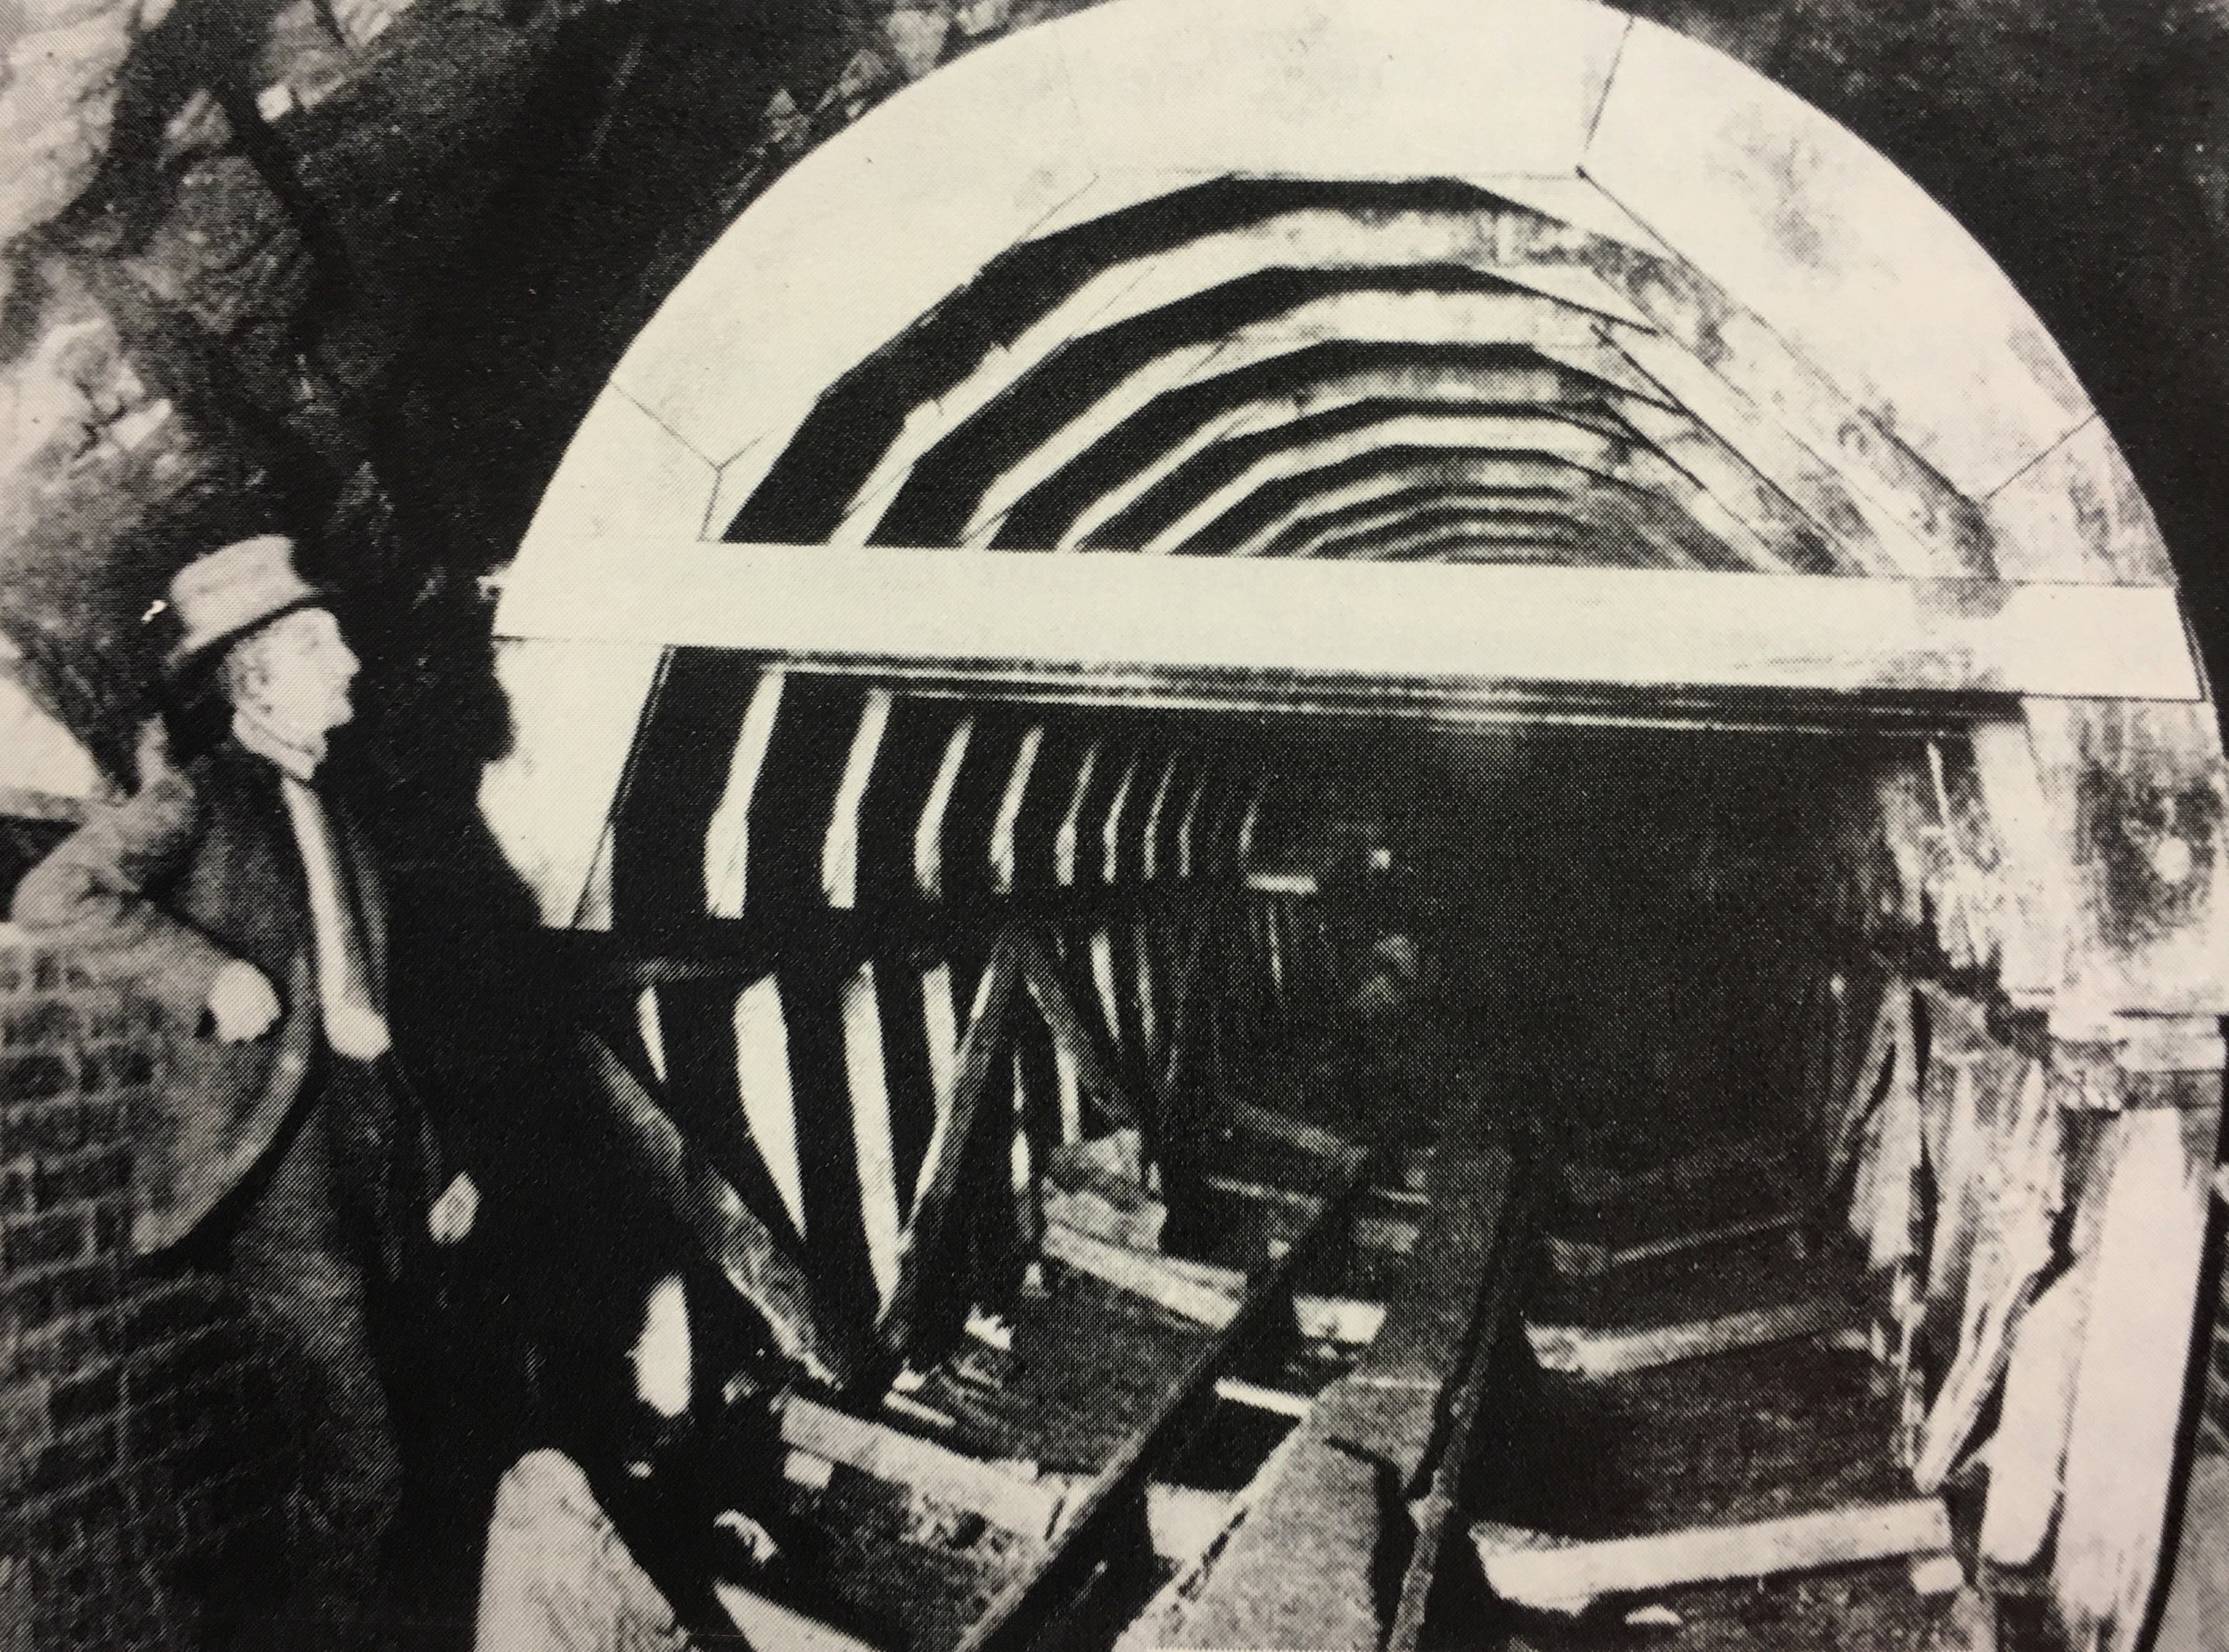 Inspecting the Lydecker Tunnel lining. Photo:  Army Corps of Engineers /Public Domain